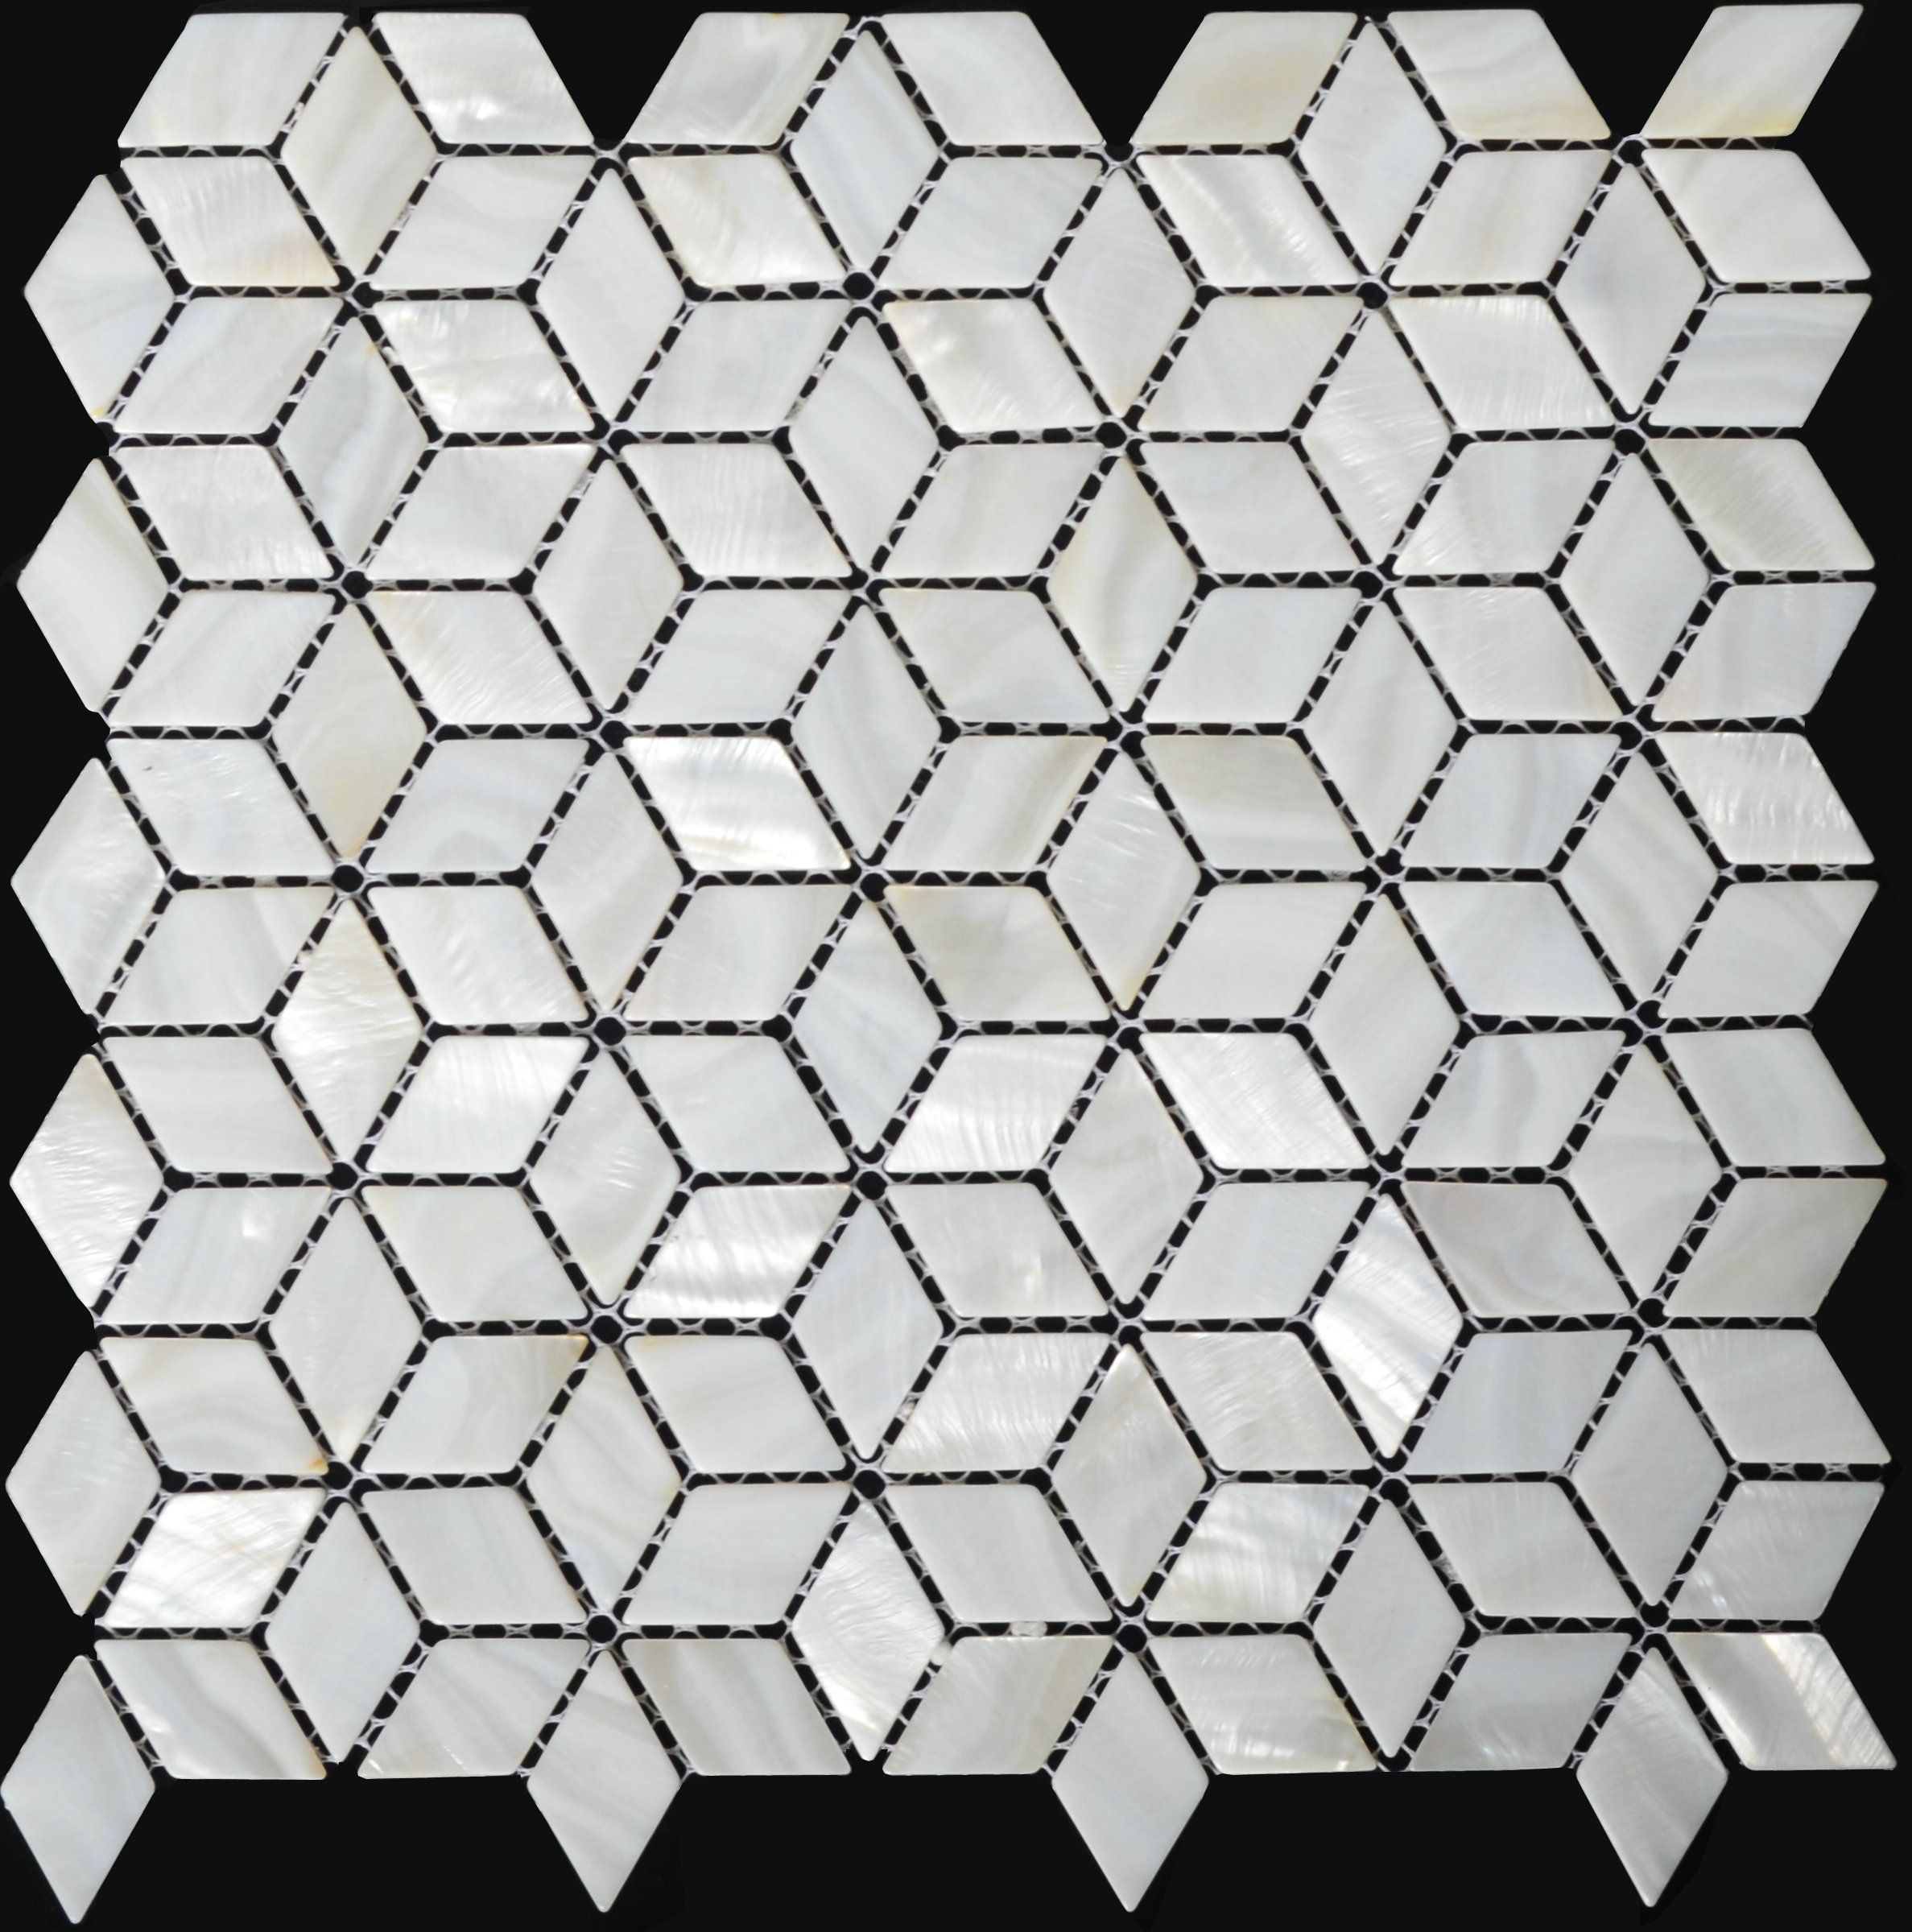 Mother of pearl tile kitchen backsplash shell mosaic bathroom tiles ...